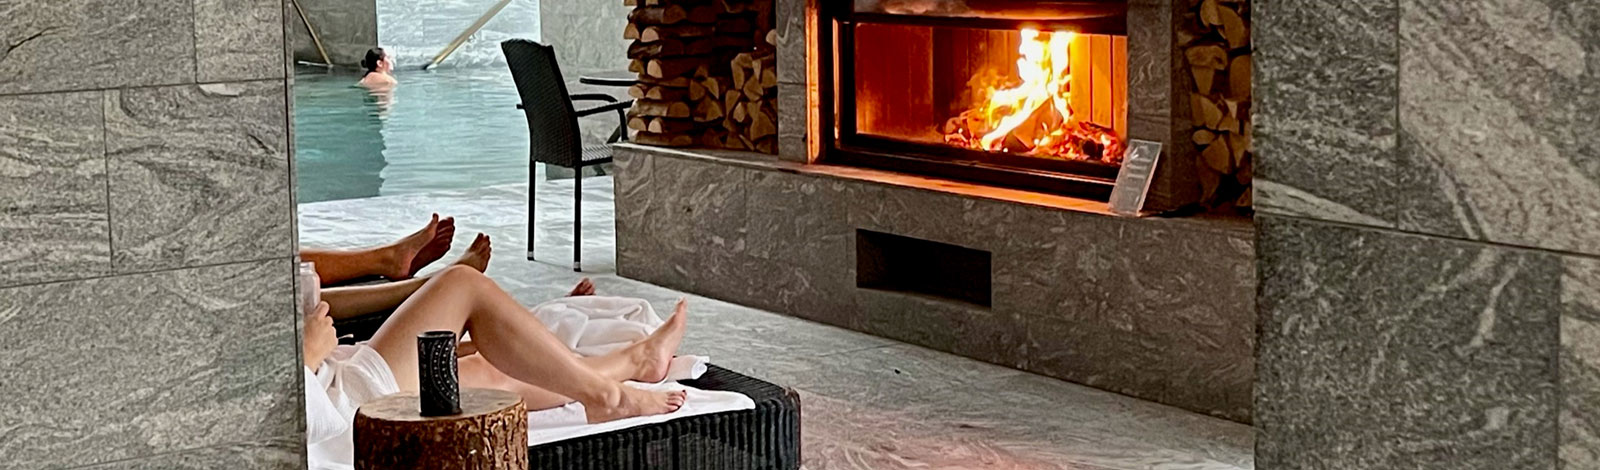 Relaxation in front of the fireplace in the thermal baths